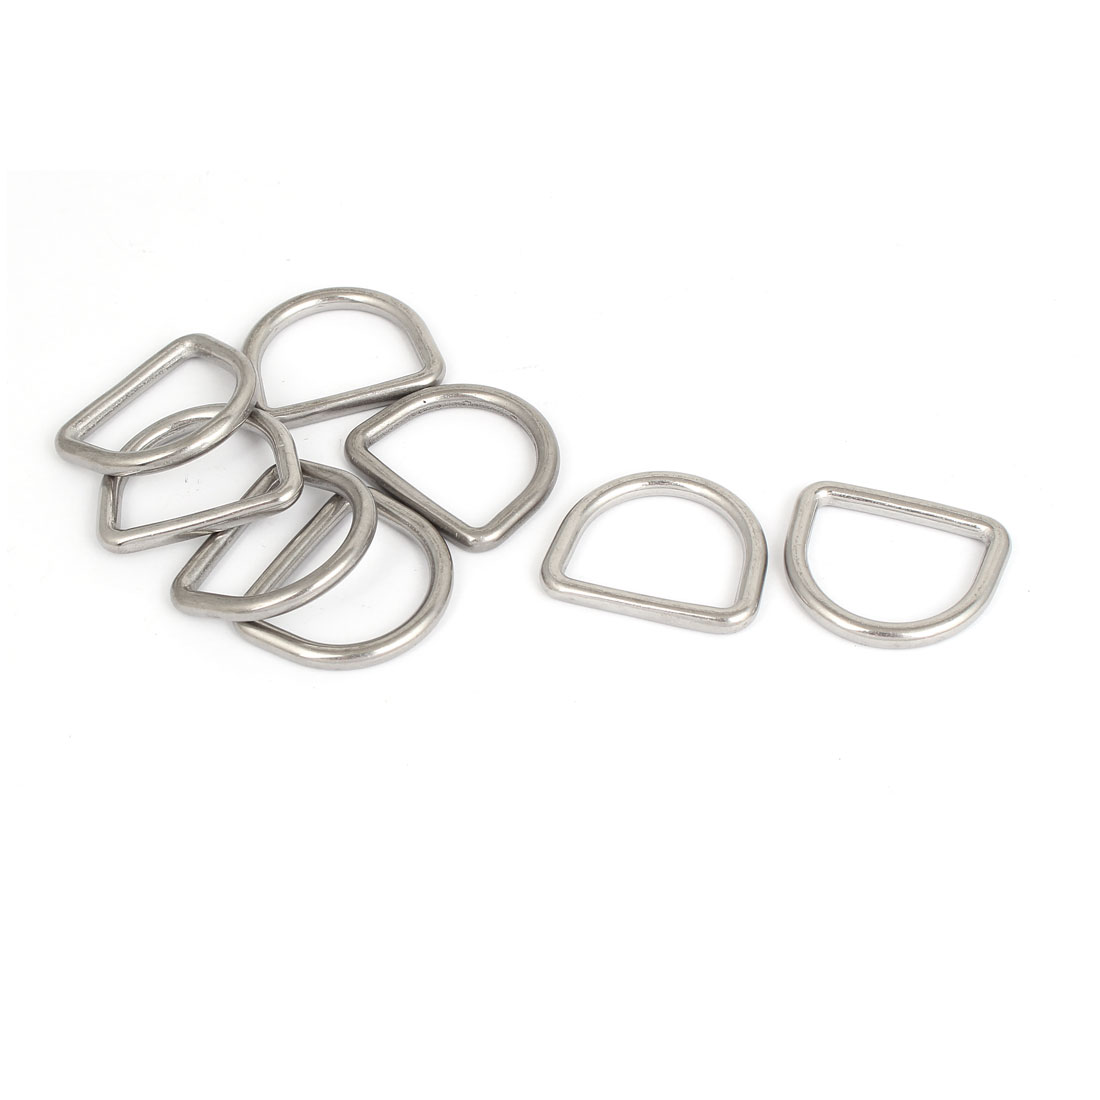 Stainless Steel D-Shaped Hooks D Ring Belt Buckles 5 Pcs for Handbag